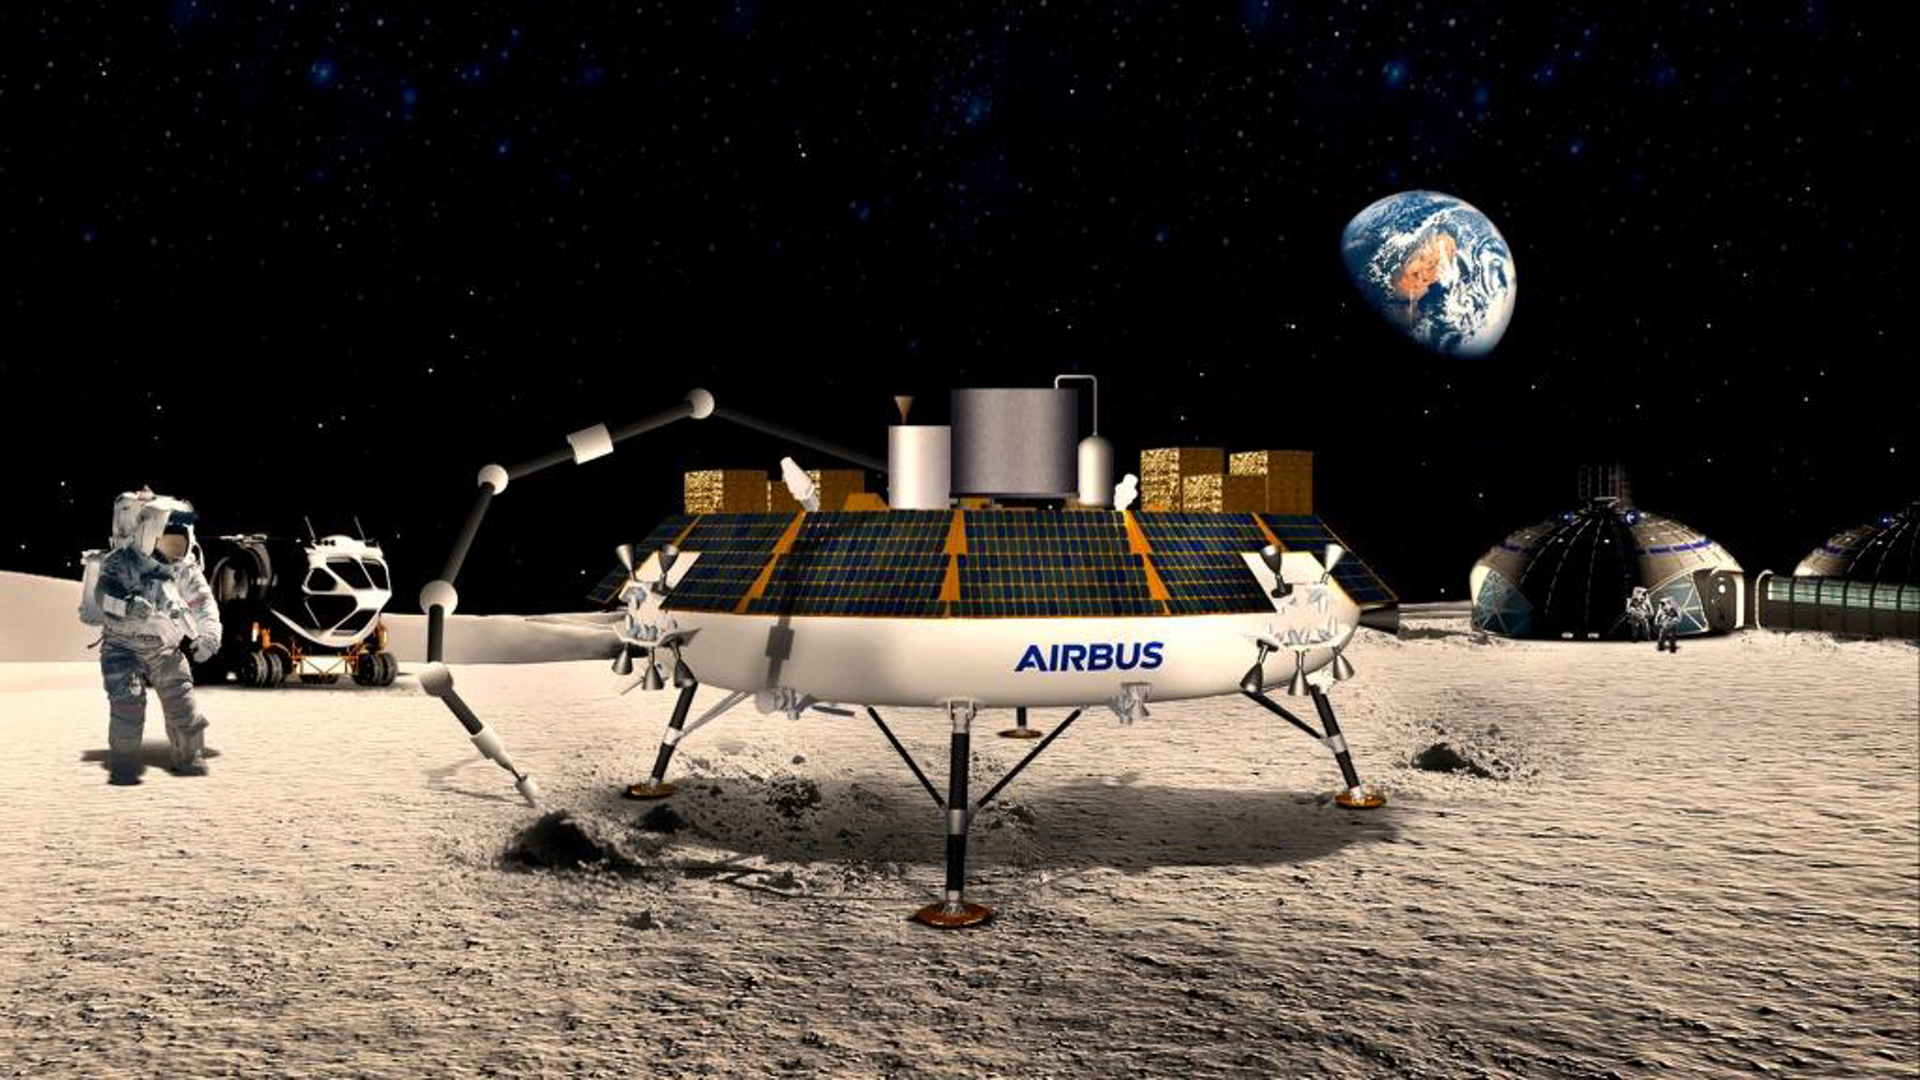 ROXY enables the design of a small, simple, compact and cost-efficient regolith to oxygen and metals conversion facility, and is therefore ideally suited to support a wide range of future exploration missions